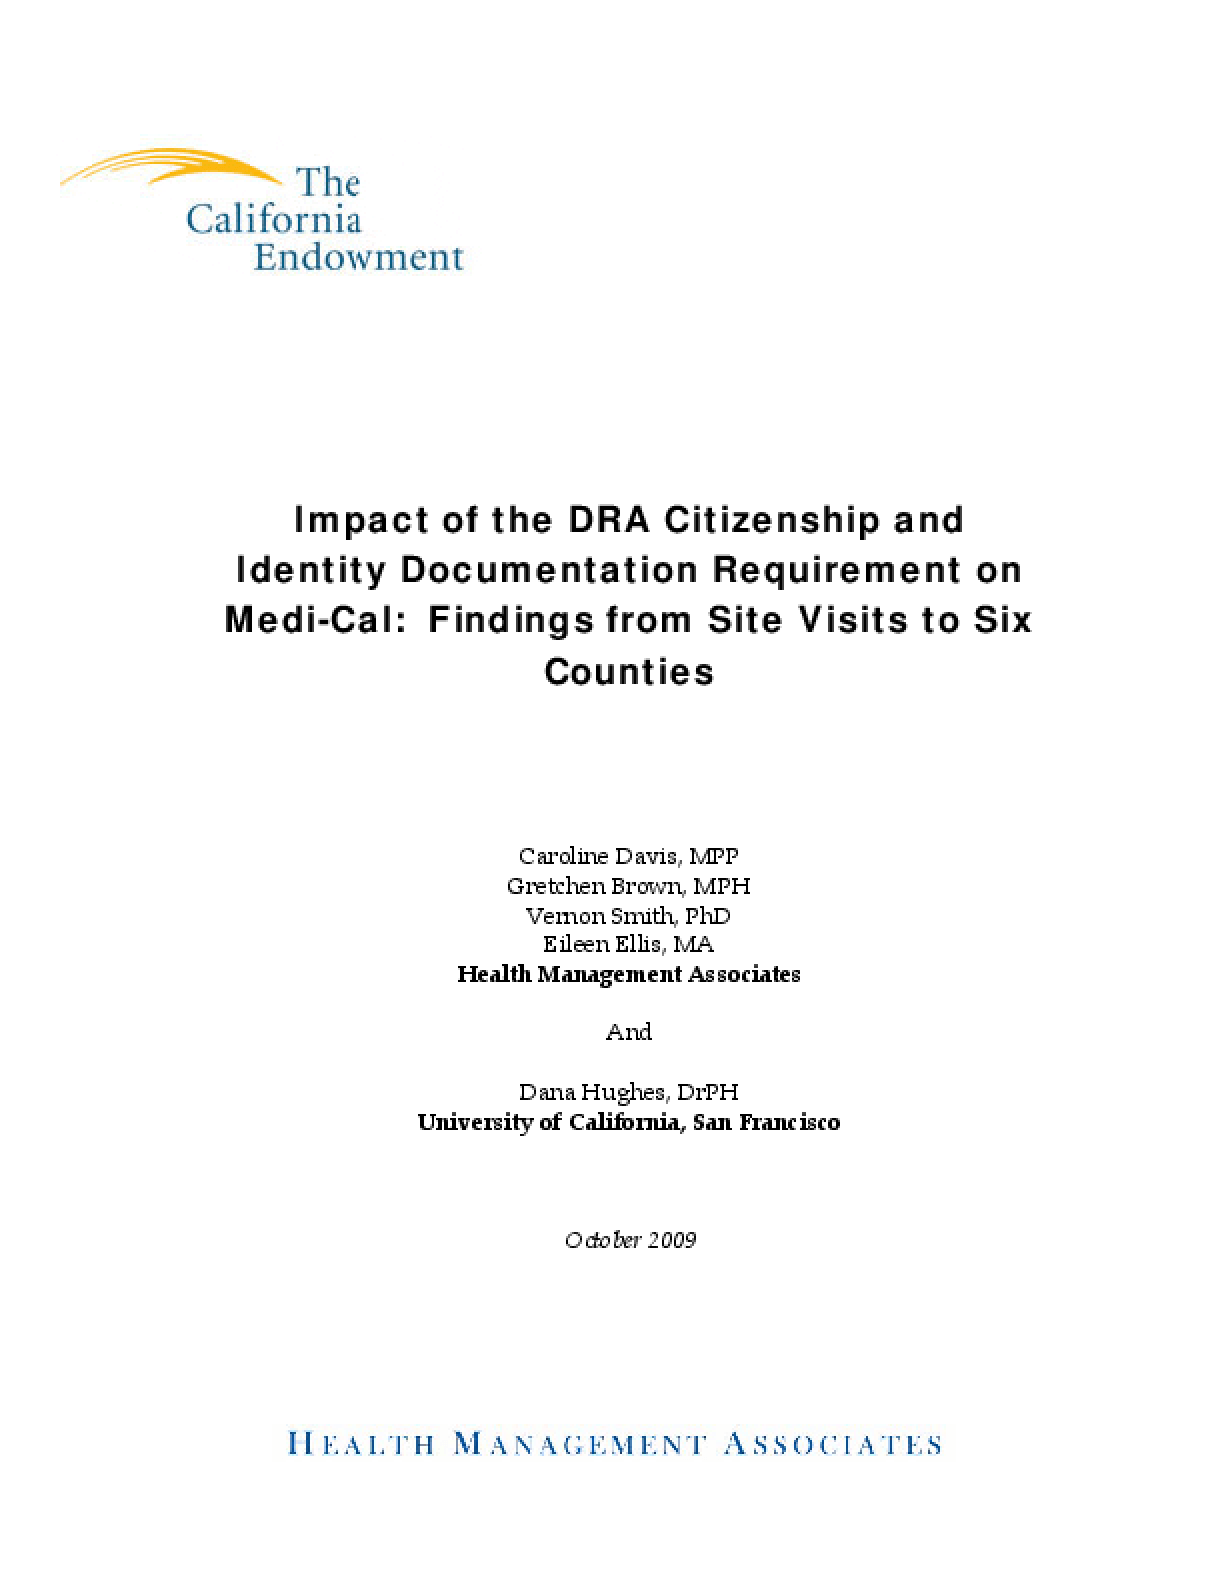 Impact of the DRA Citizenship and Identity Documentation Requirement on Medi-Cal: Findings From Site Visits to Six Counties